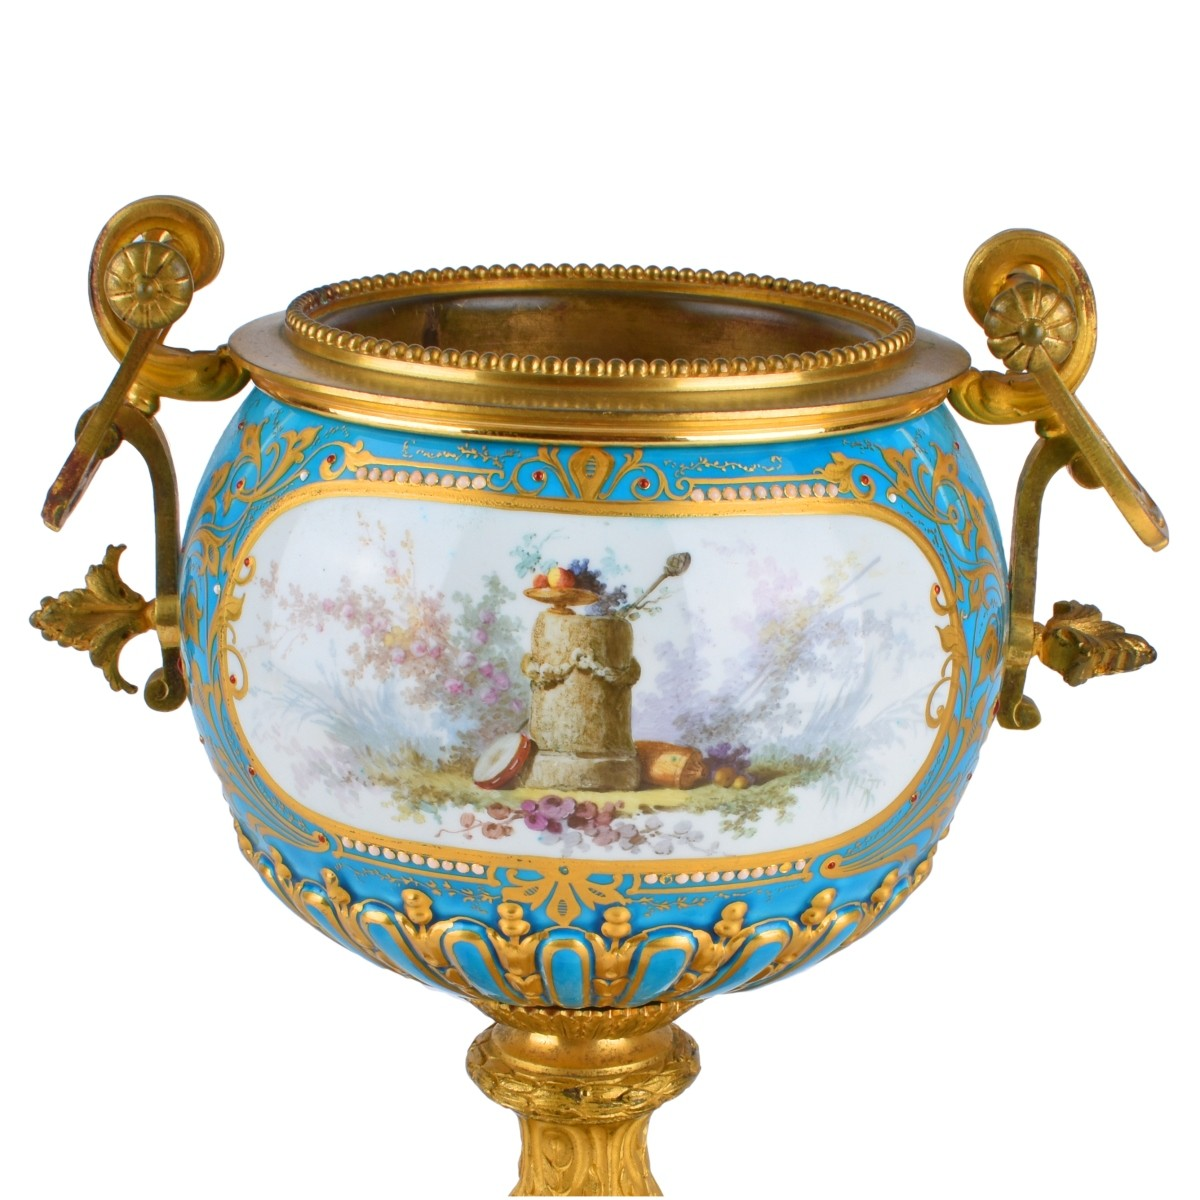 A Sevres syle Porcelain and Bronze Mounted Bowl